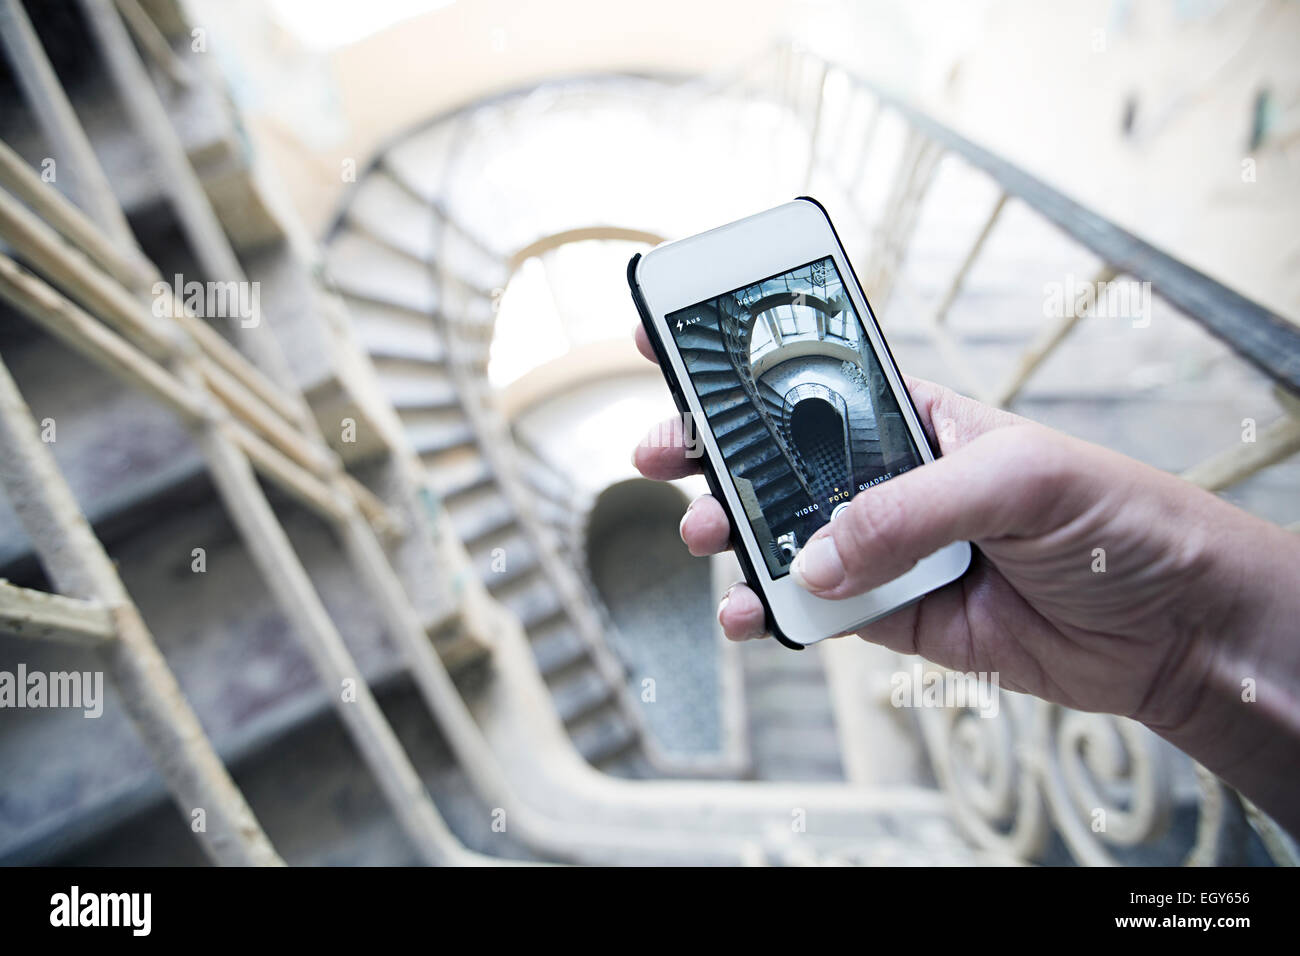 Woman's hand holding smartphone taking a picture Stock Photo